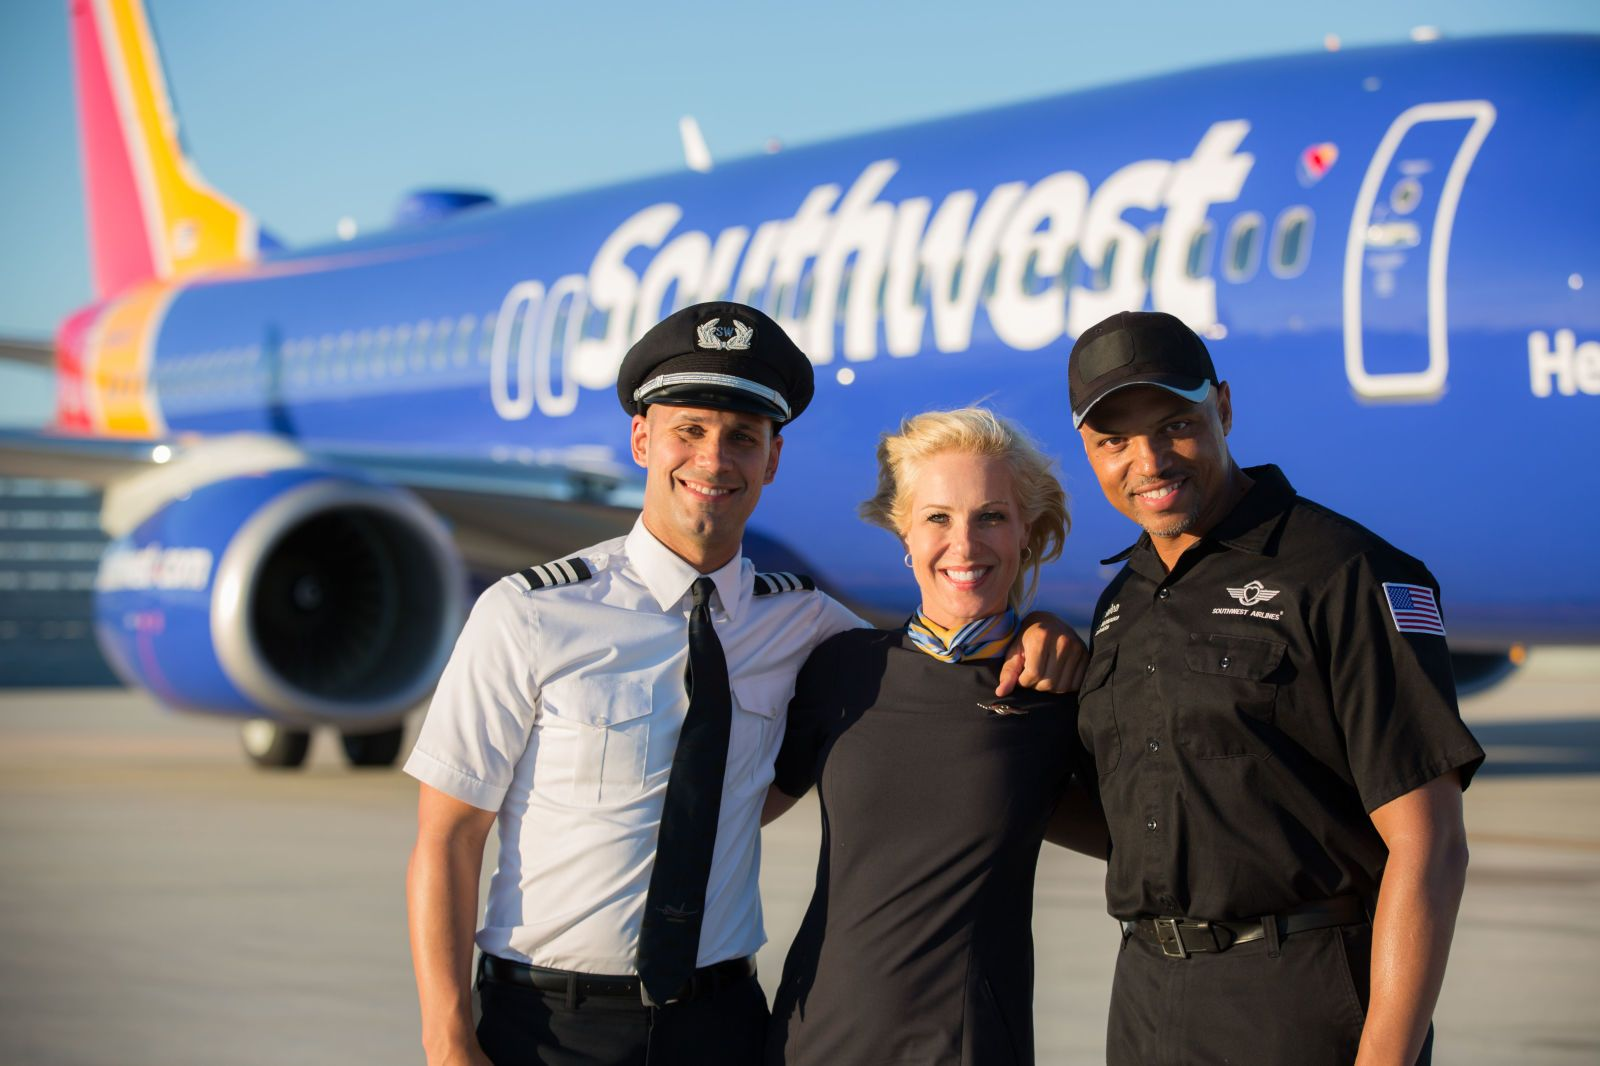 Interview Insider How To Get A Job At Southwest Airlines Southwest Airlines Airline Jobs Flight Attendant Interview Questions